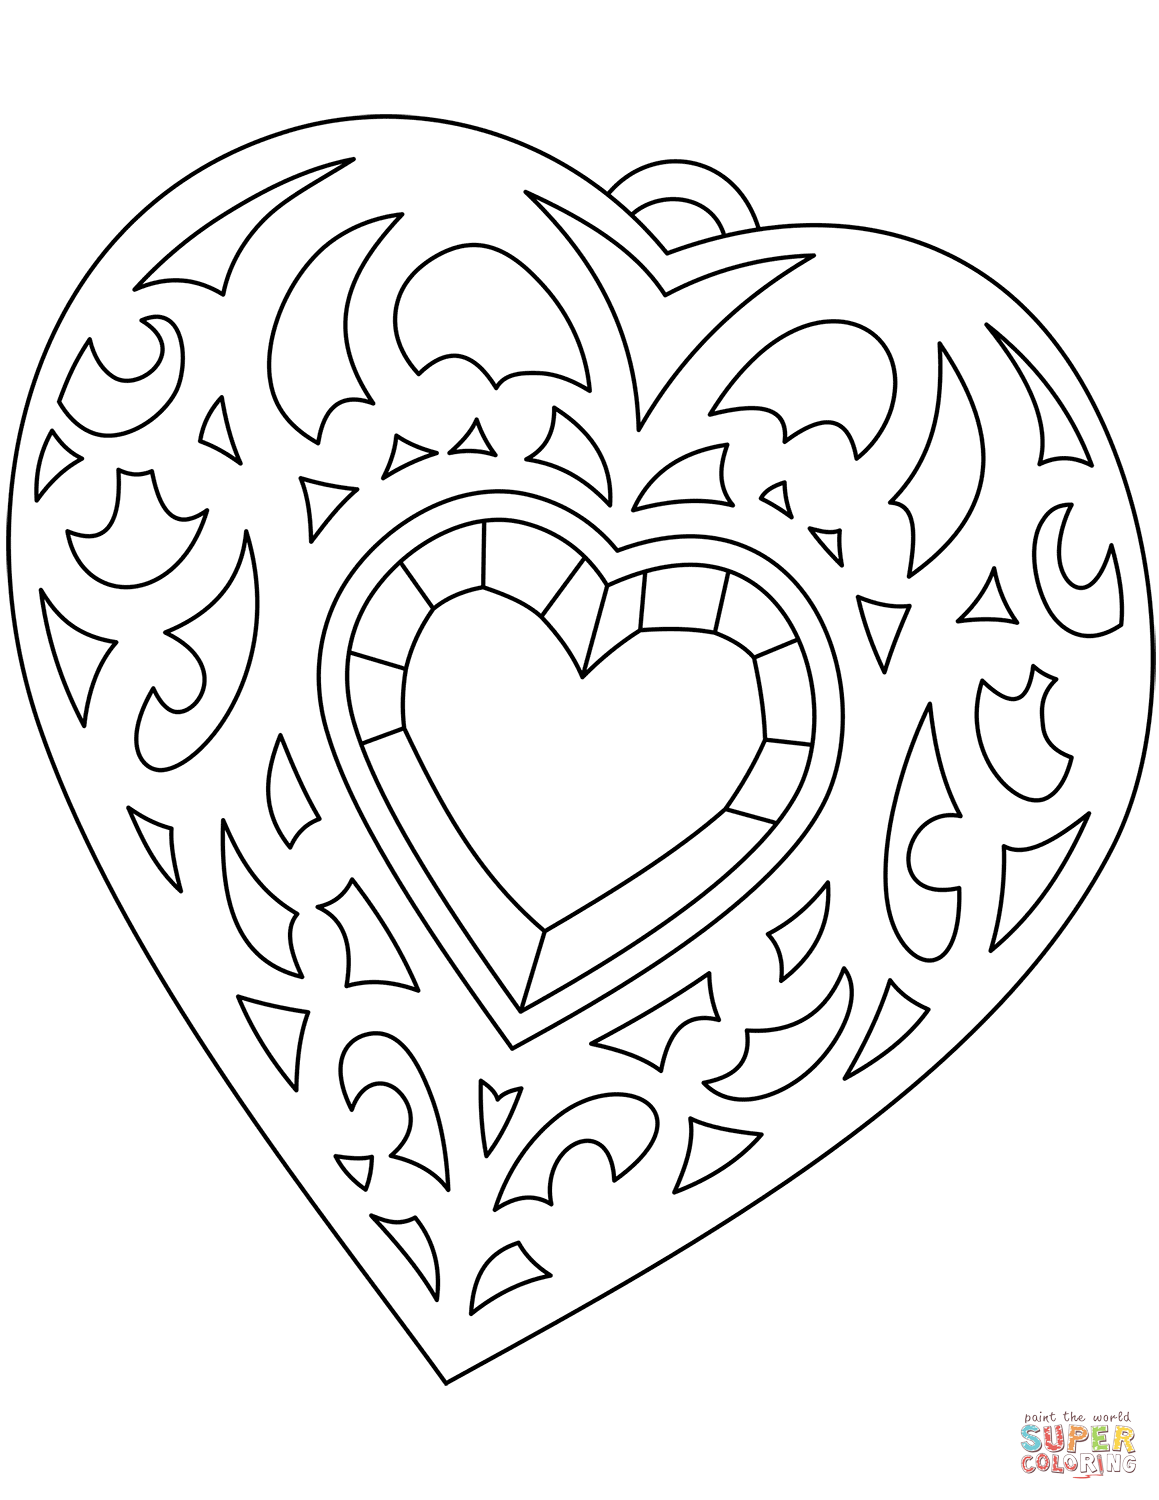 Heart Shaped Medallion Coloring Page